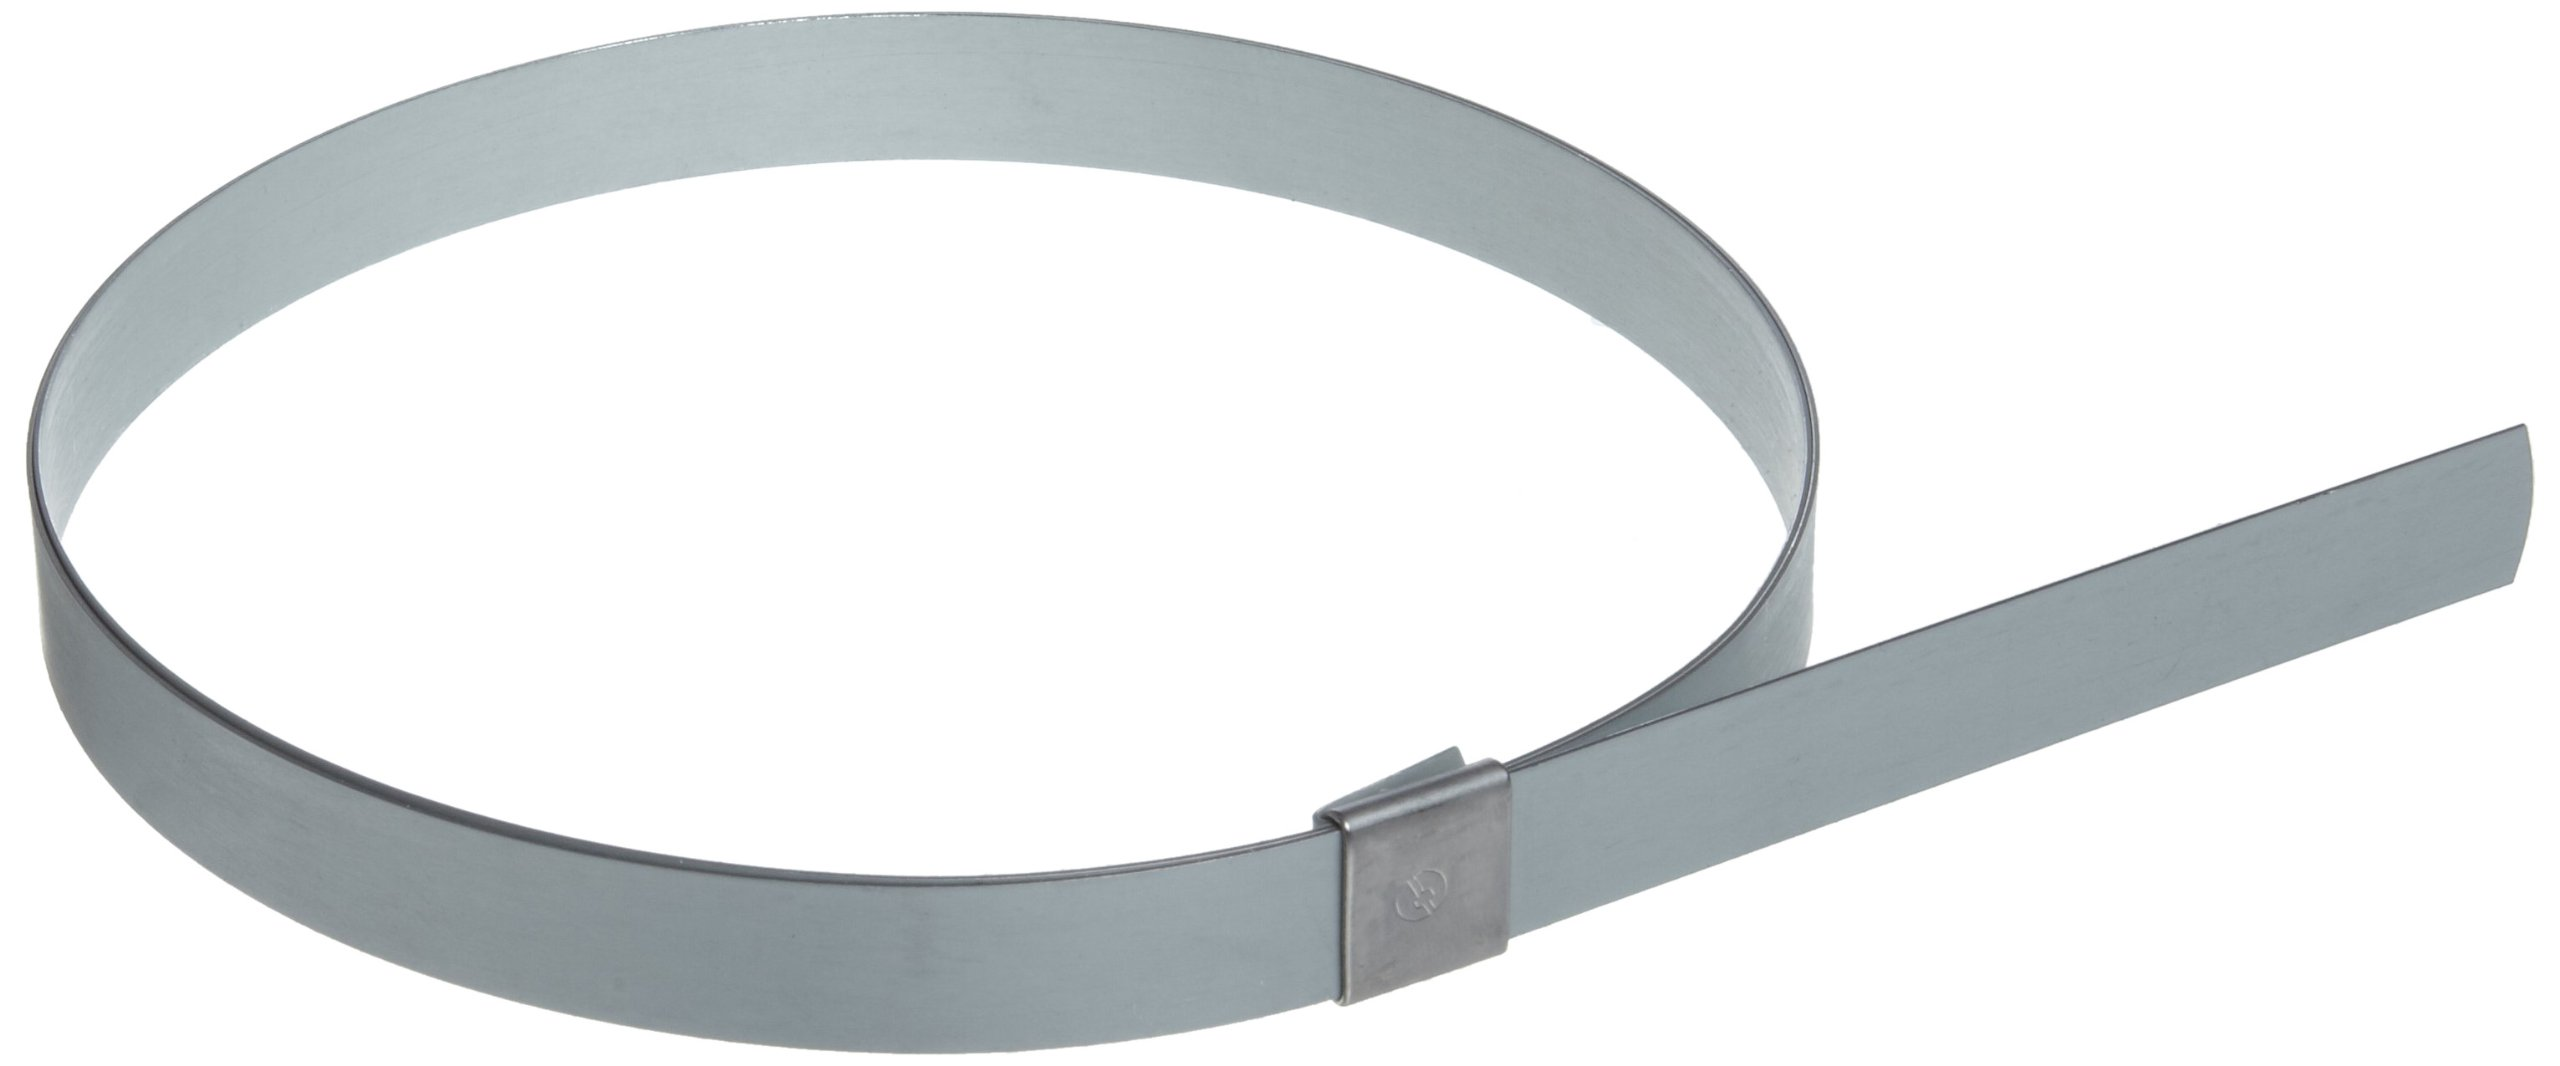 BAND-IT CP2099 5/8'' Wide x 0.025'' Thick 5'' Diameter, Galvanized Carbon Steel Center Punch Clamp (25 Per Box) by Band-It